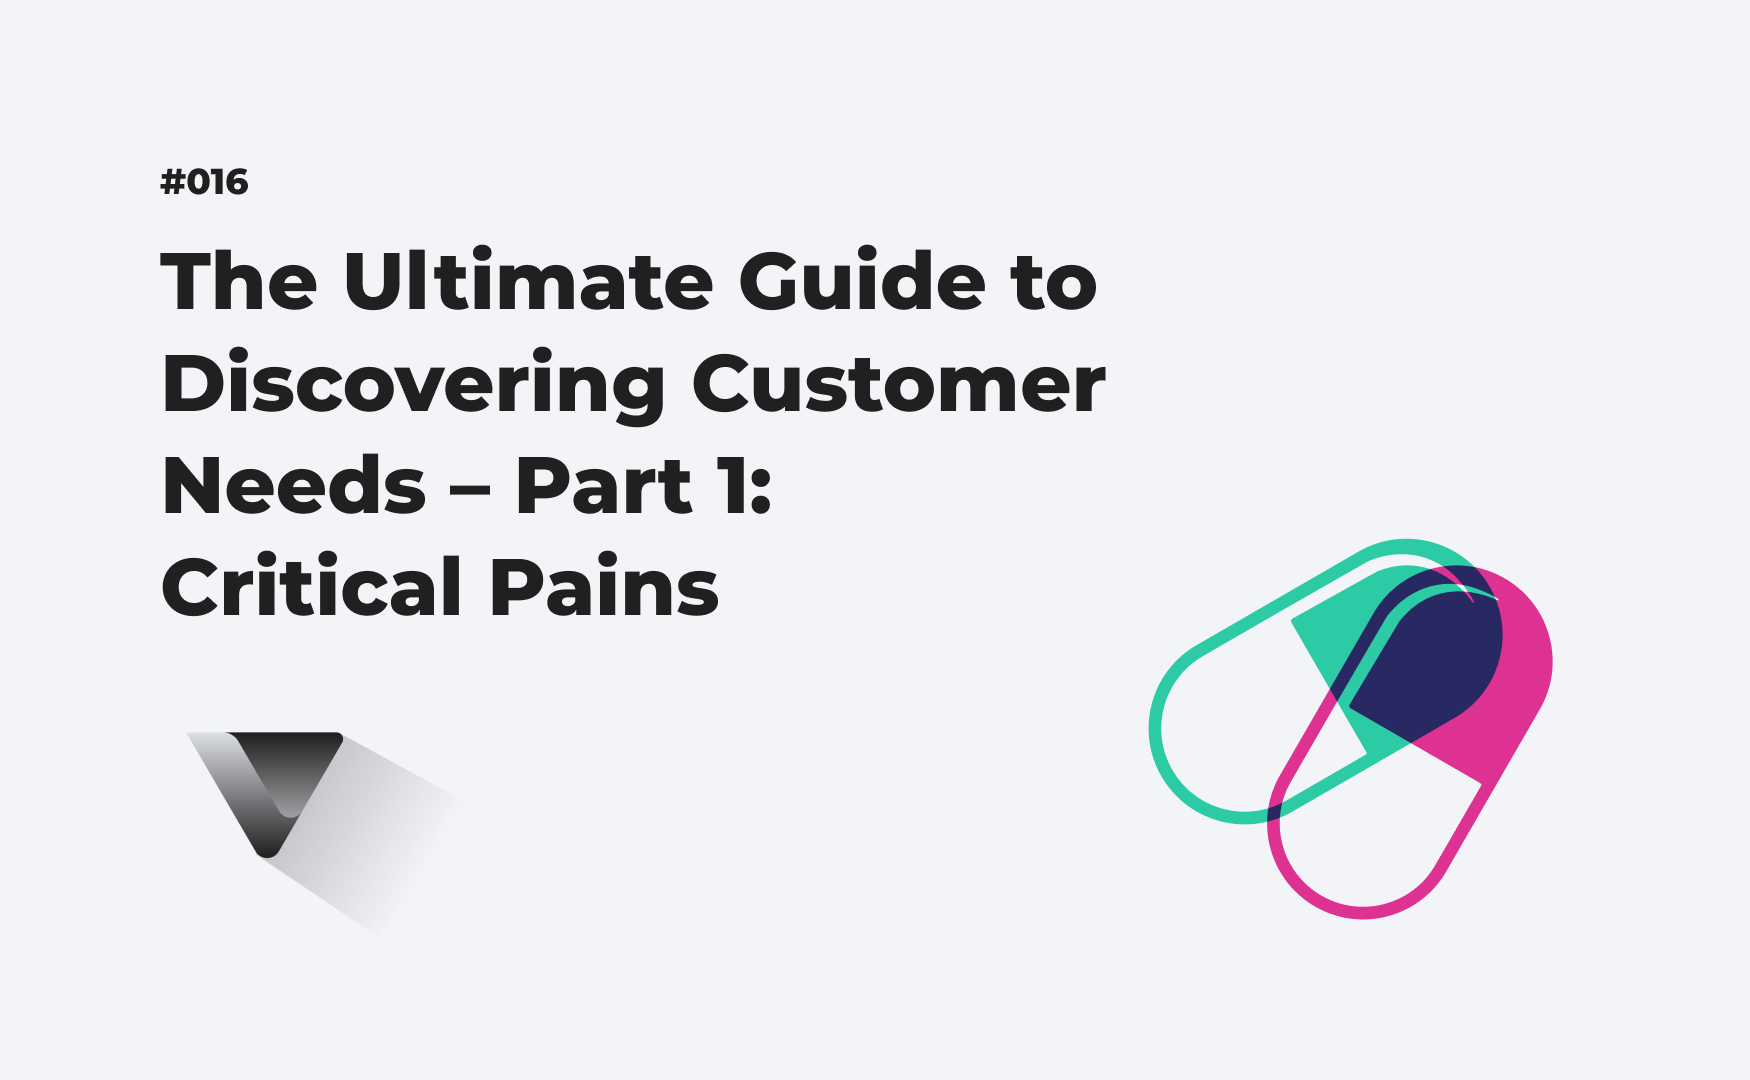 The Ultimate Guide to Discovering Customer Needs – Part 1: Critical Pains